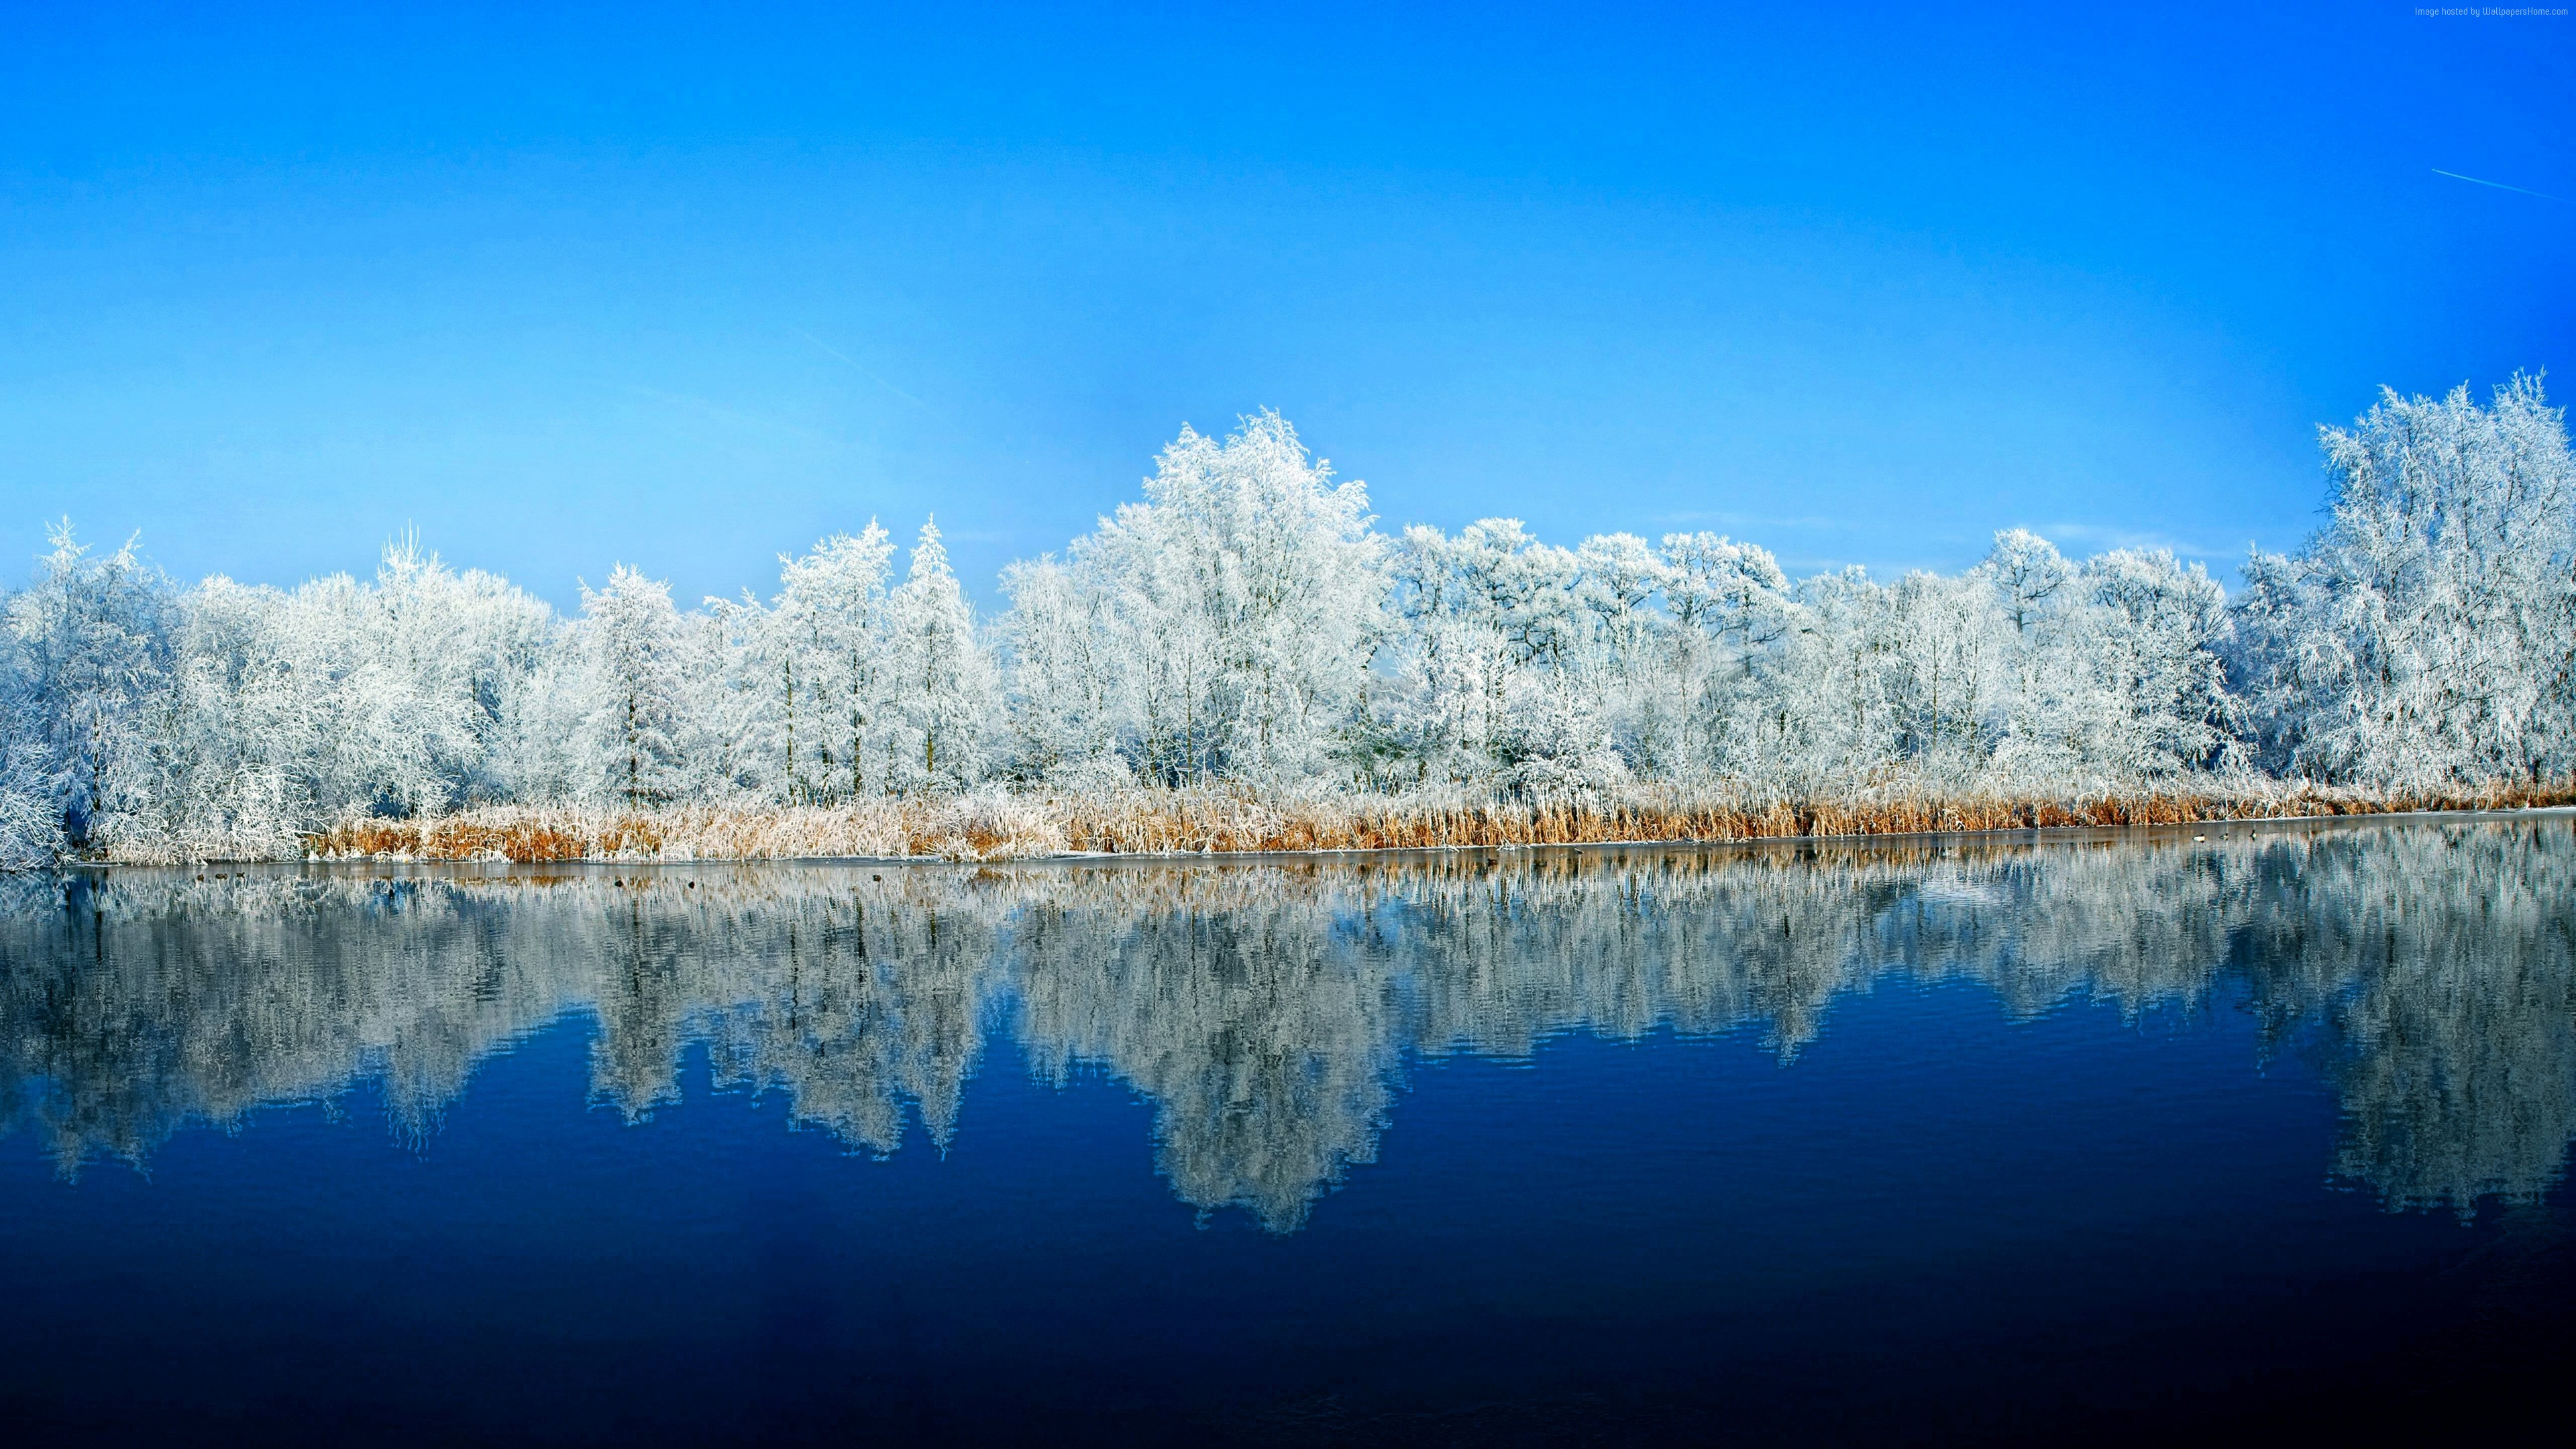 Wallpaper lake, forest, snow, winter, 5k, Nature